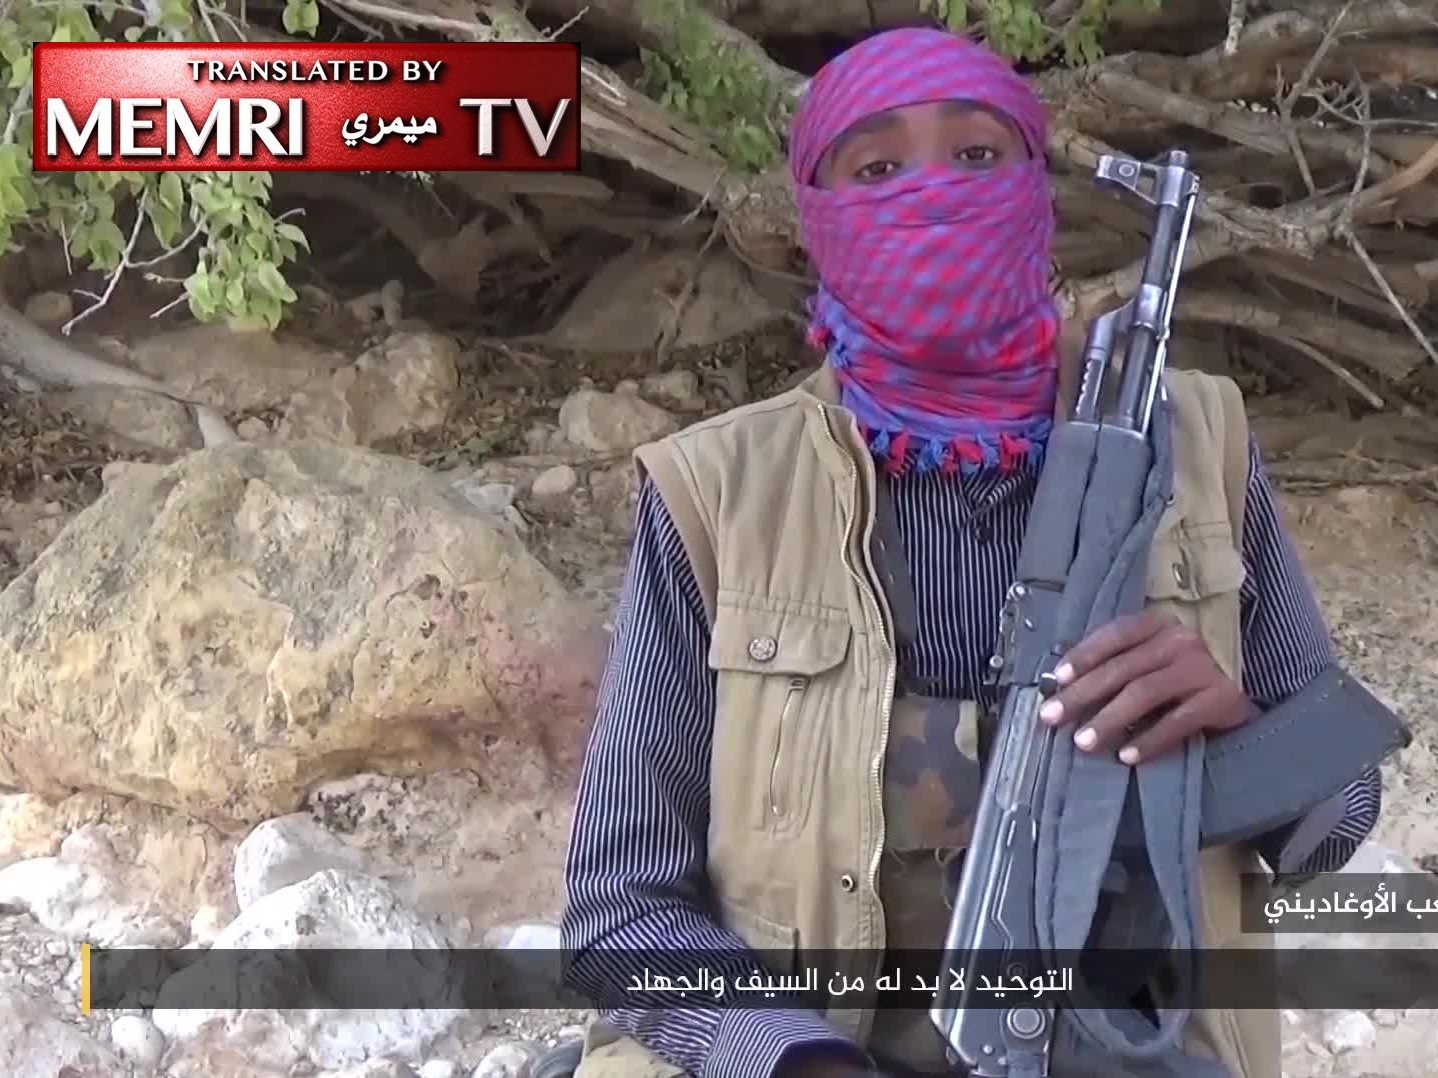 ISIS Incites to Terror Attacks against Churches, Christians in the West during Holiday Season, in First-Ever Video from Somalia (Warning: Graphic)